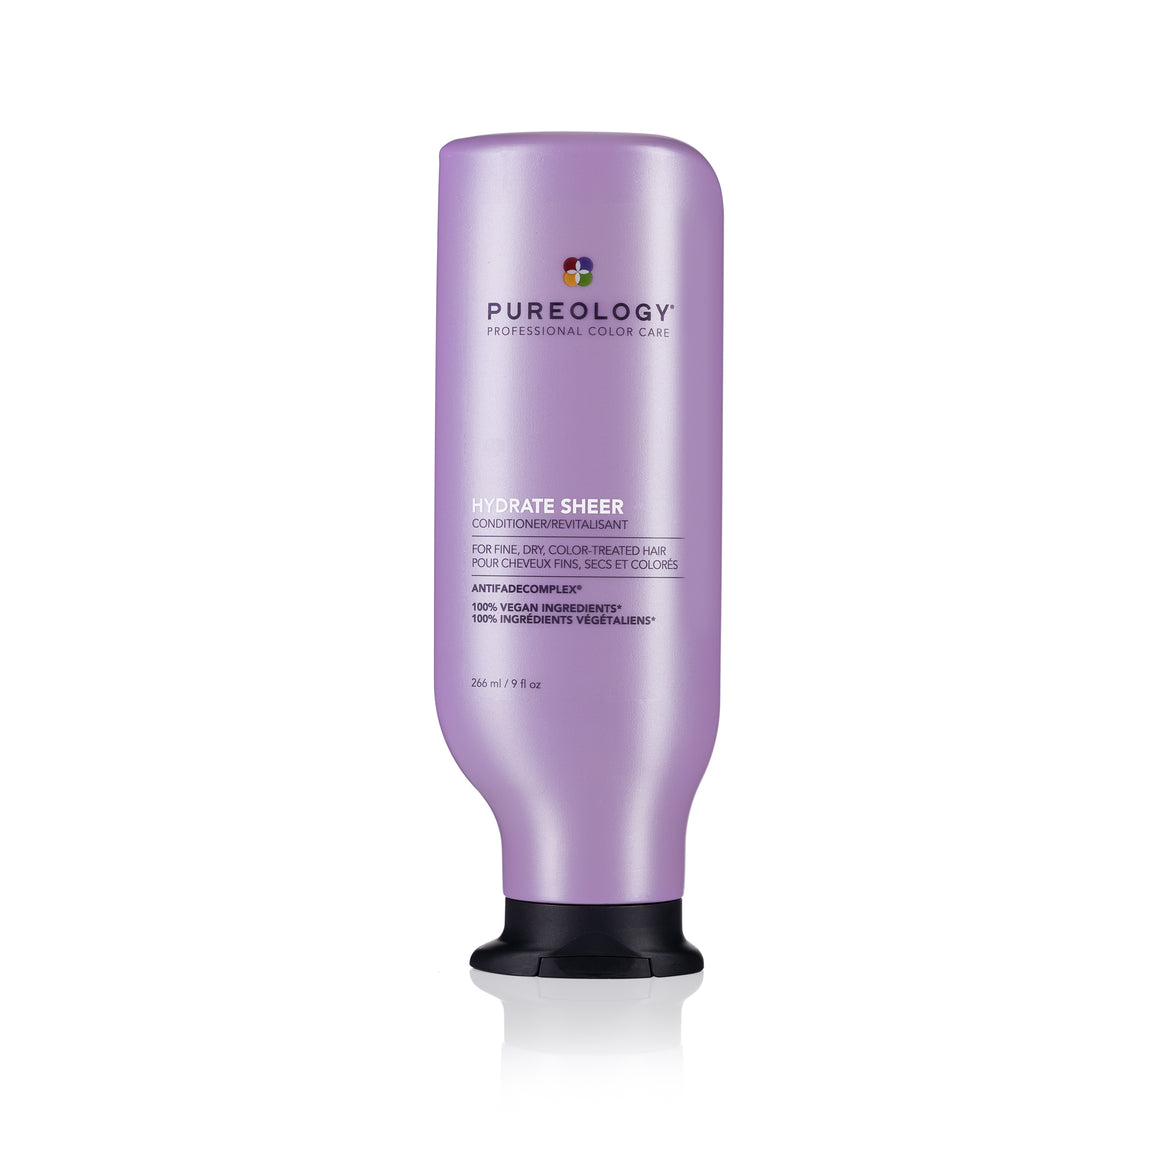 Pureology Hydrate Sheer Conditioner 266ml